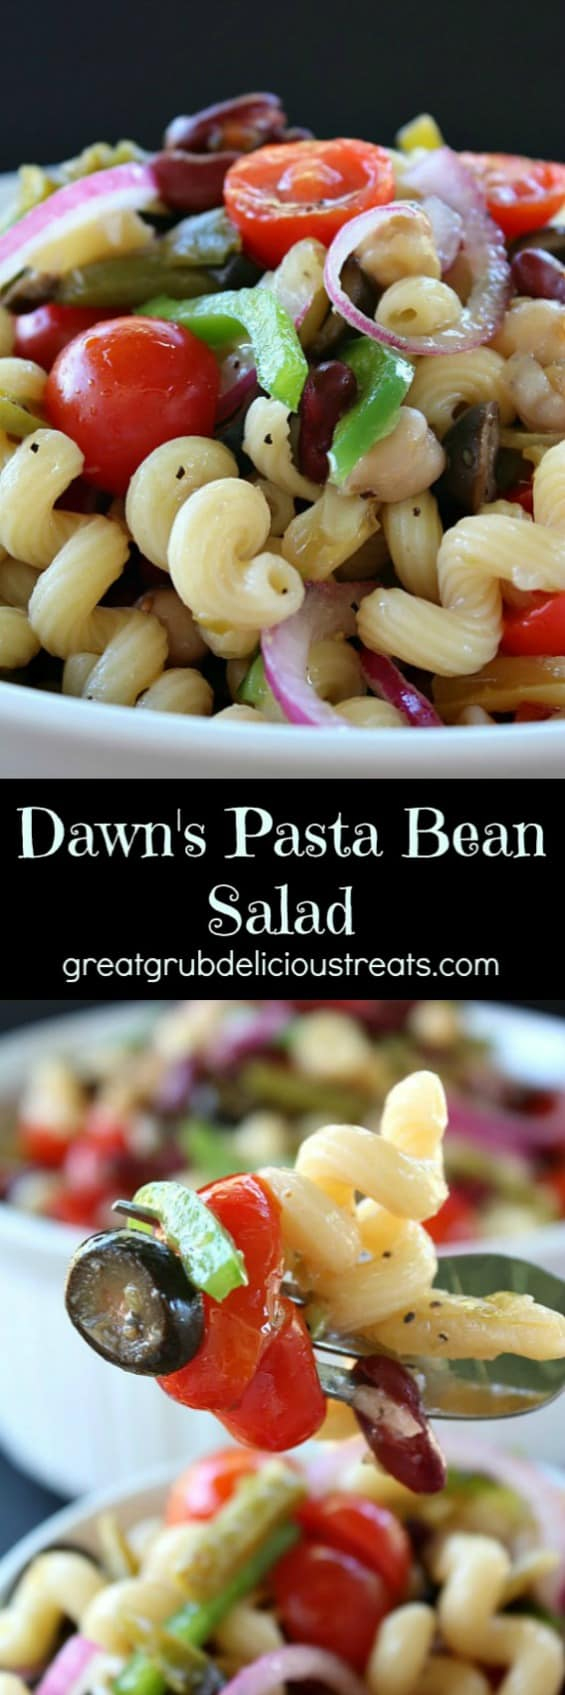 Dawn's Pasta Bean Salad